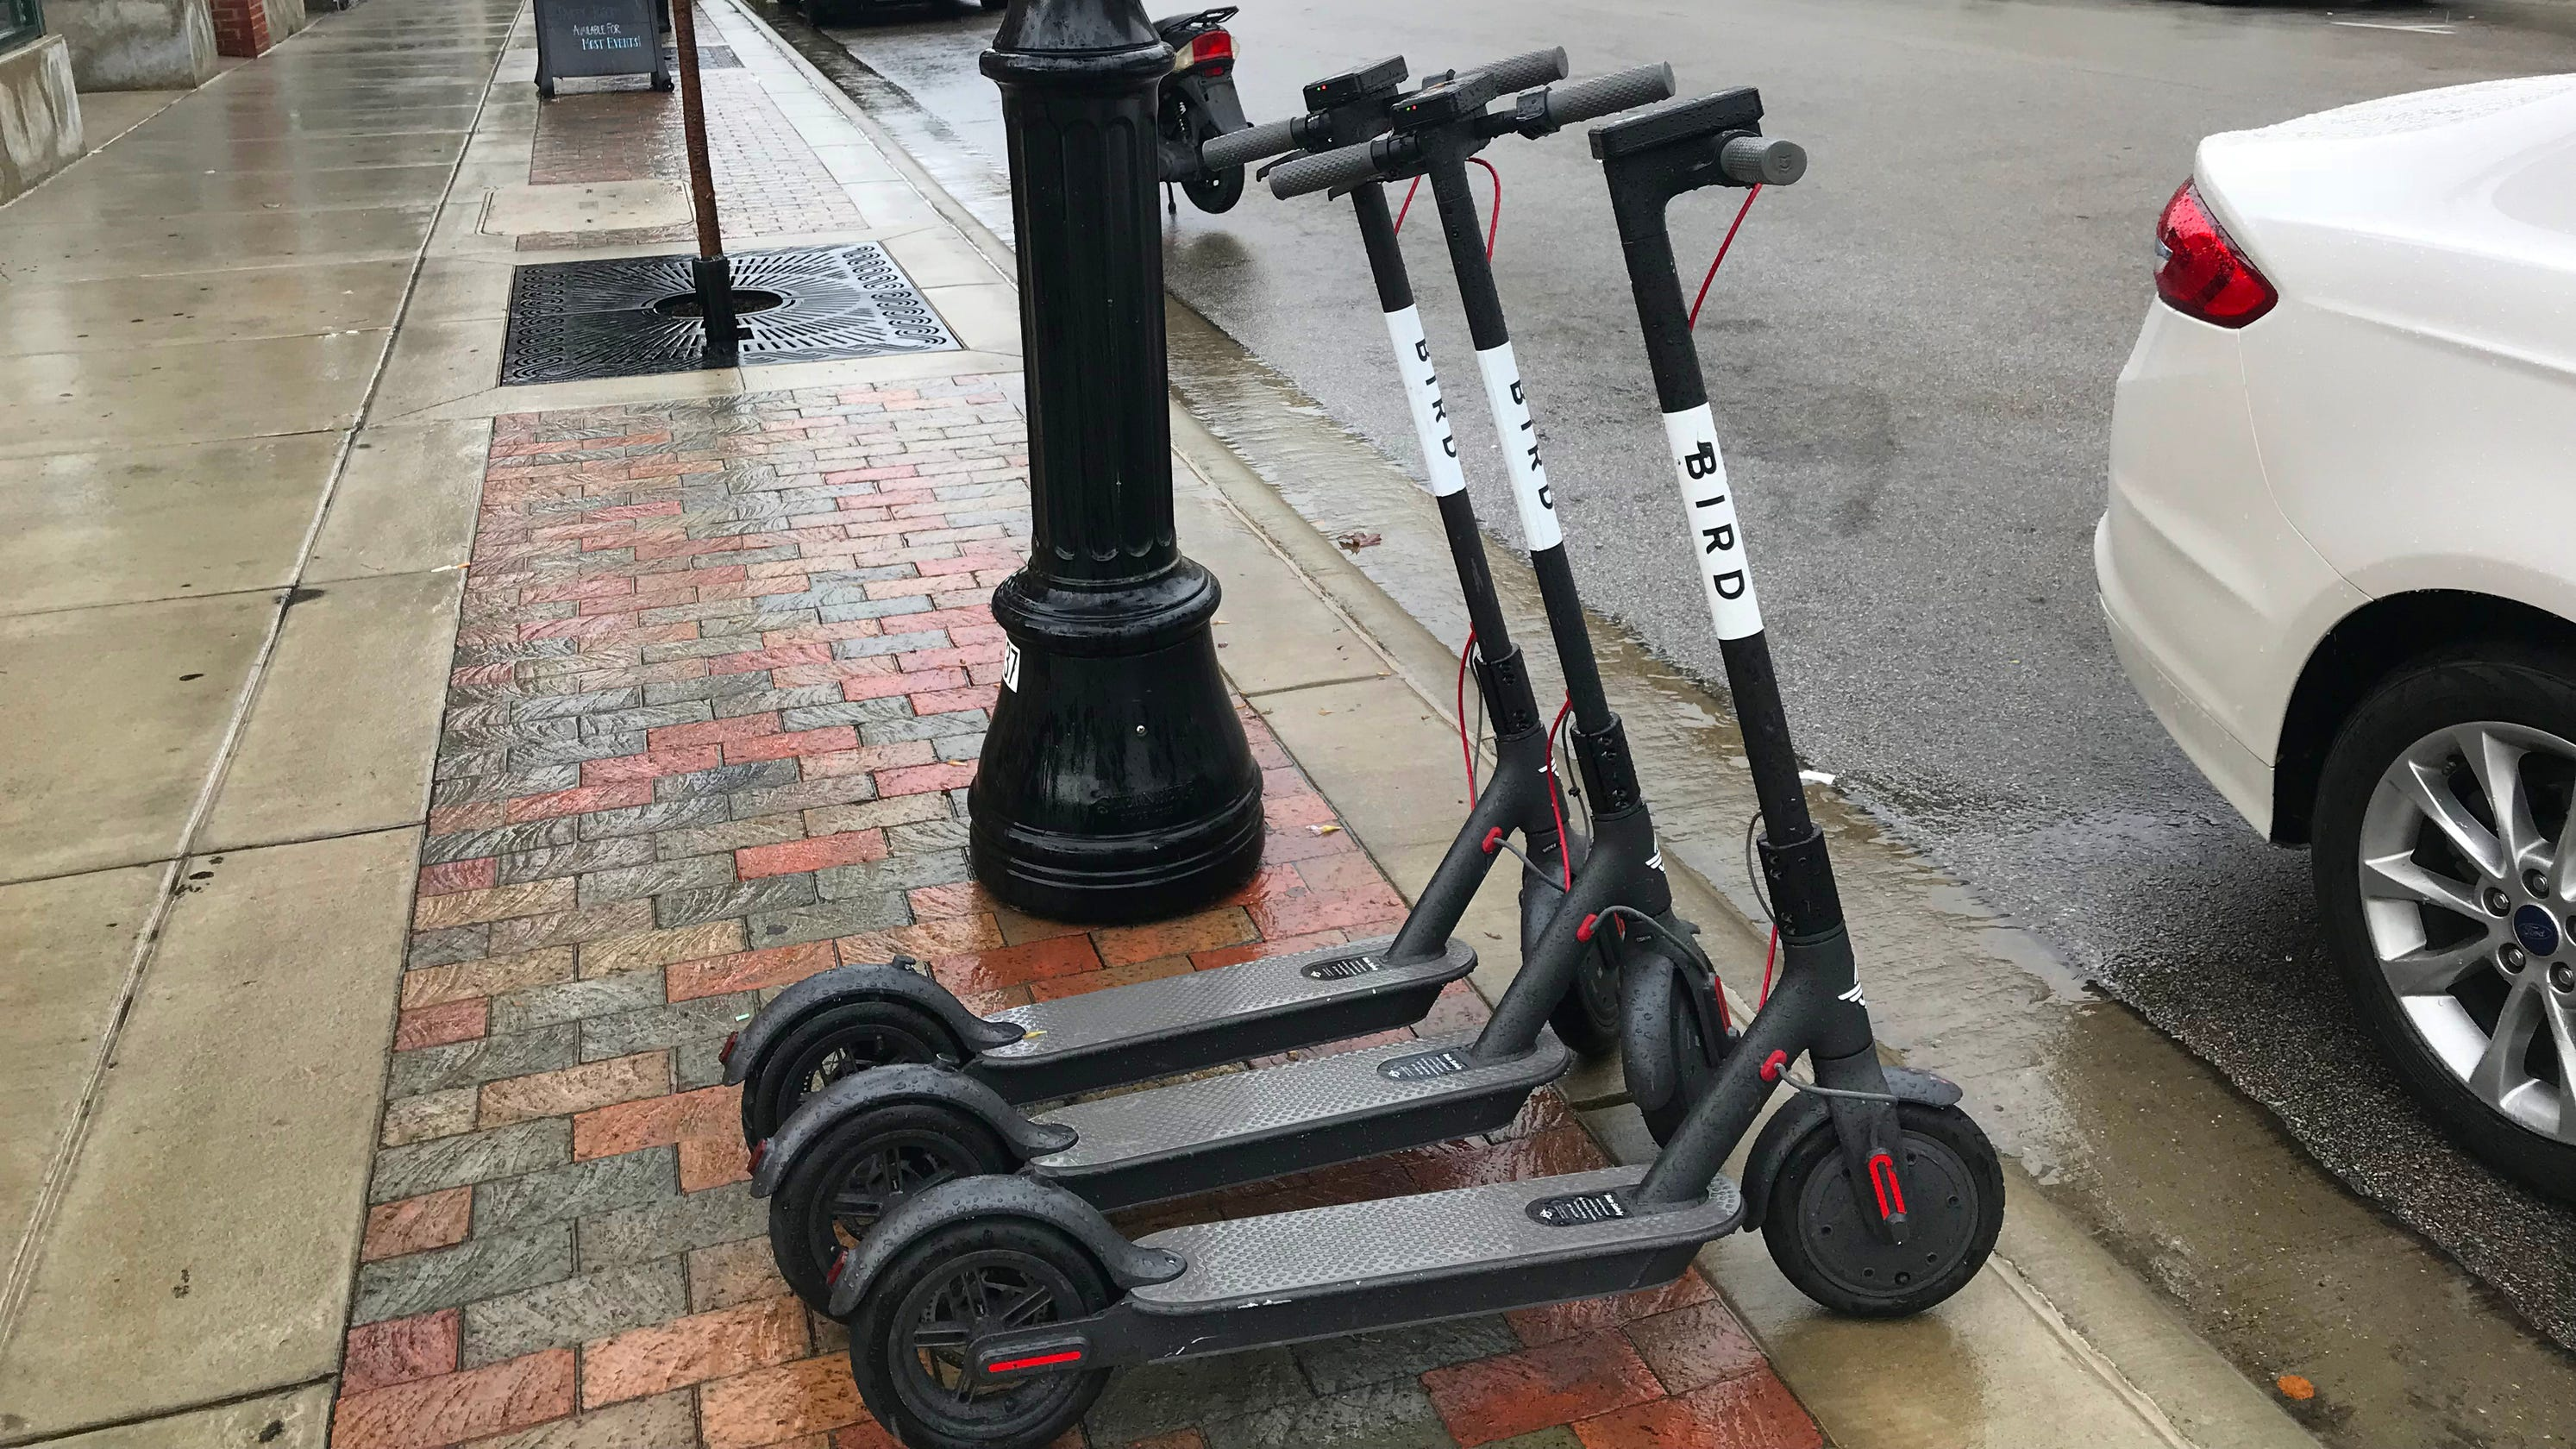 Electric scooters: After cease and desist, Lafayette invites